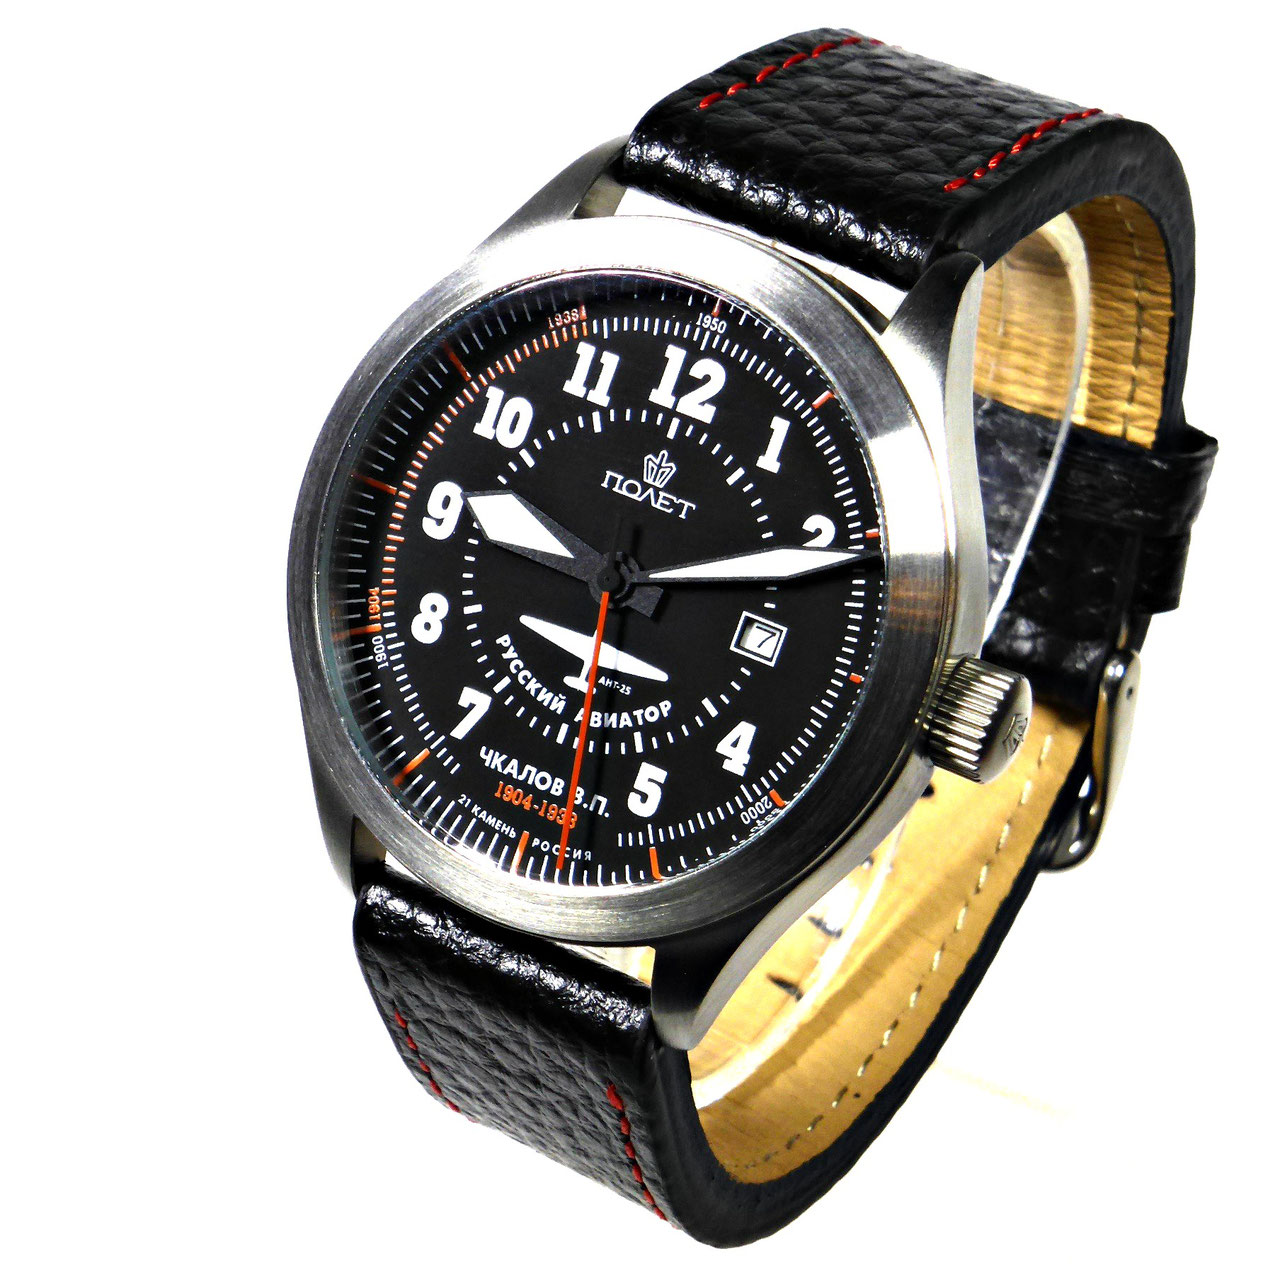 aviator watches steel for naval aviation nfo shop men stainless pol de watch company and